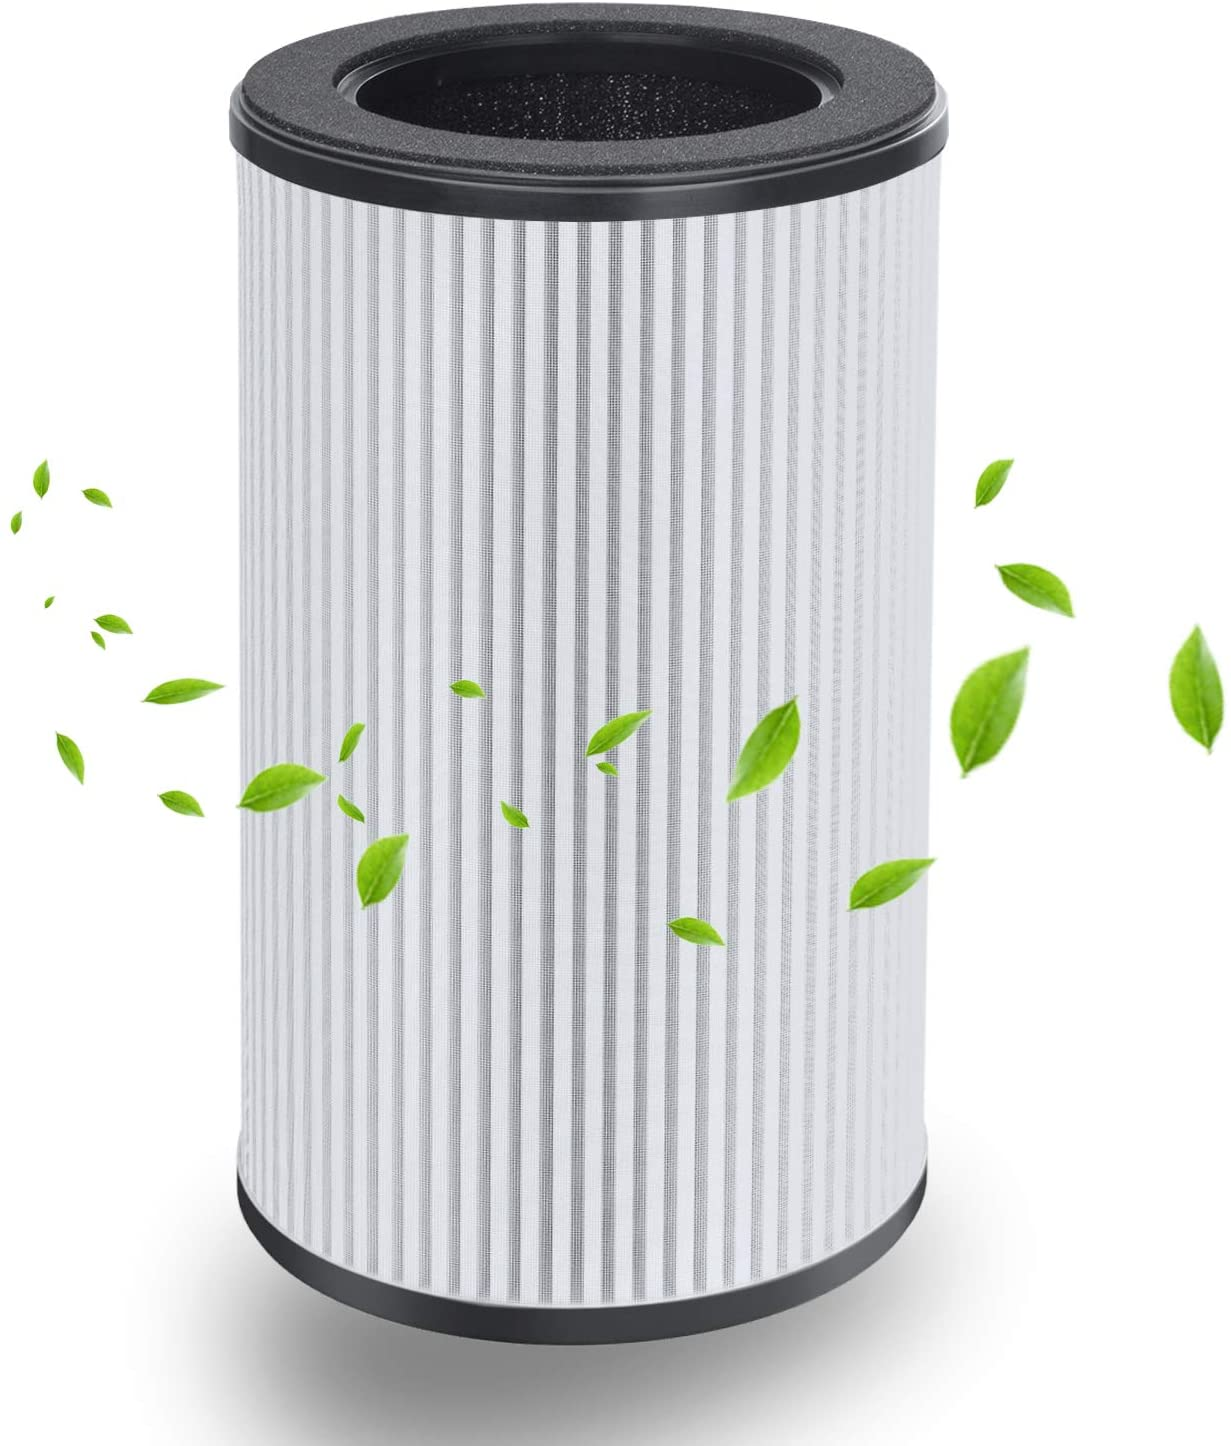 FAMTOP Air Purifier Replacement Filter Household 99.5% Pm2.5 Removal Rate, 4N1 Composite Filter, Purification Efficiency Is Faster, More Quiet